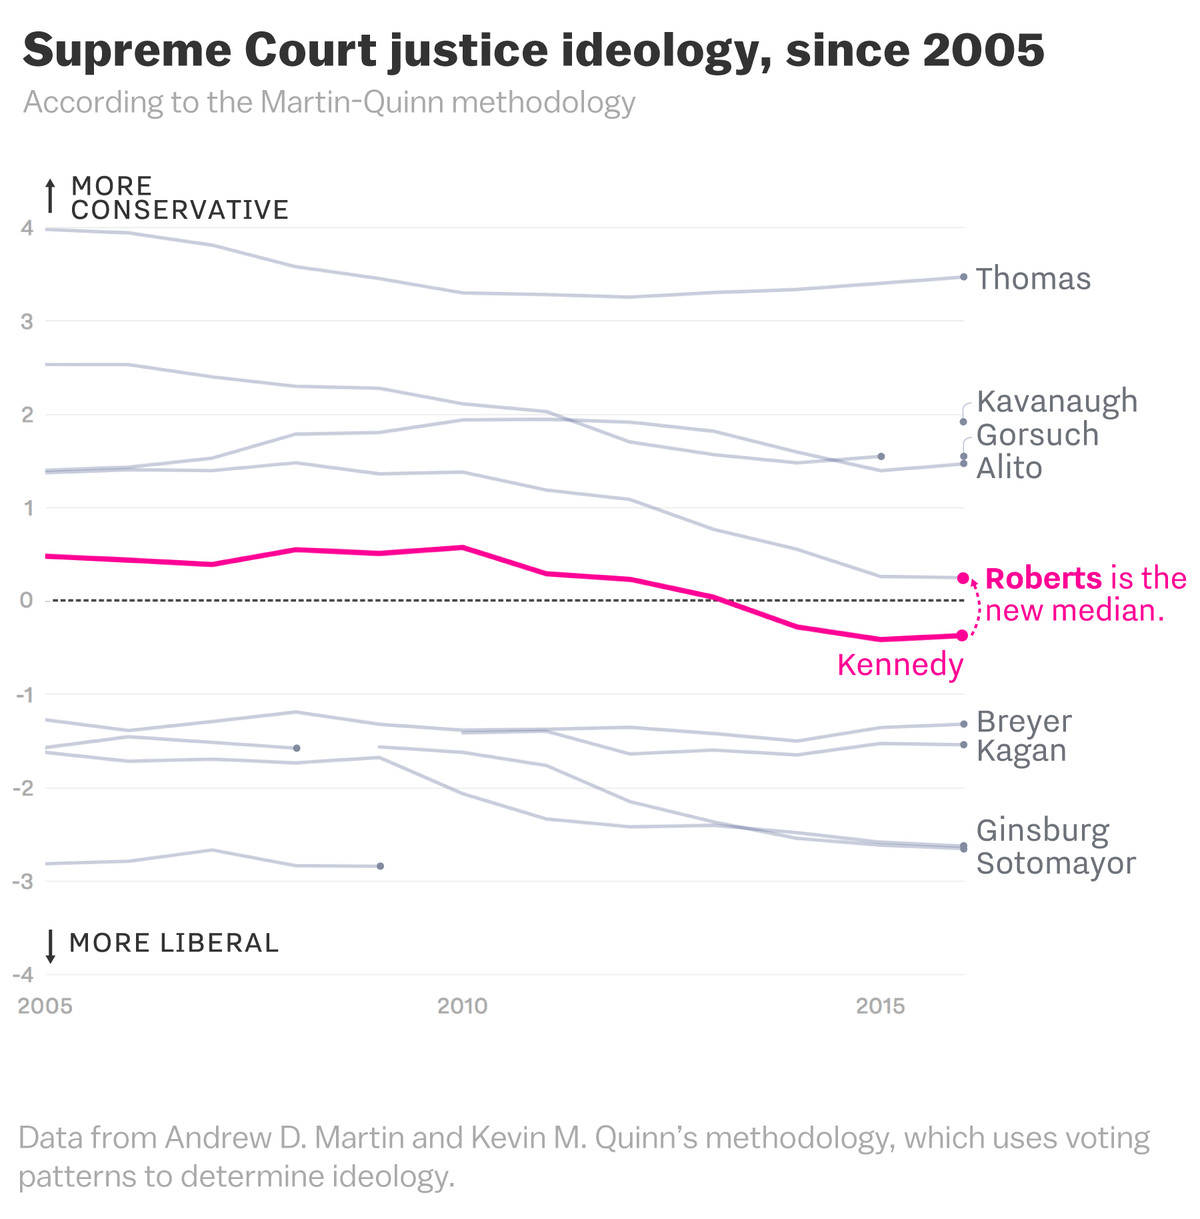 Policy Politics On Flipboard By Vox: Brett Kavanaugh And The Supreme Court's Shift To The Right